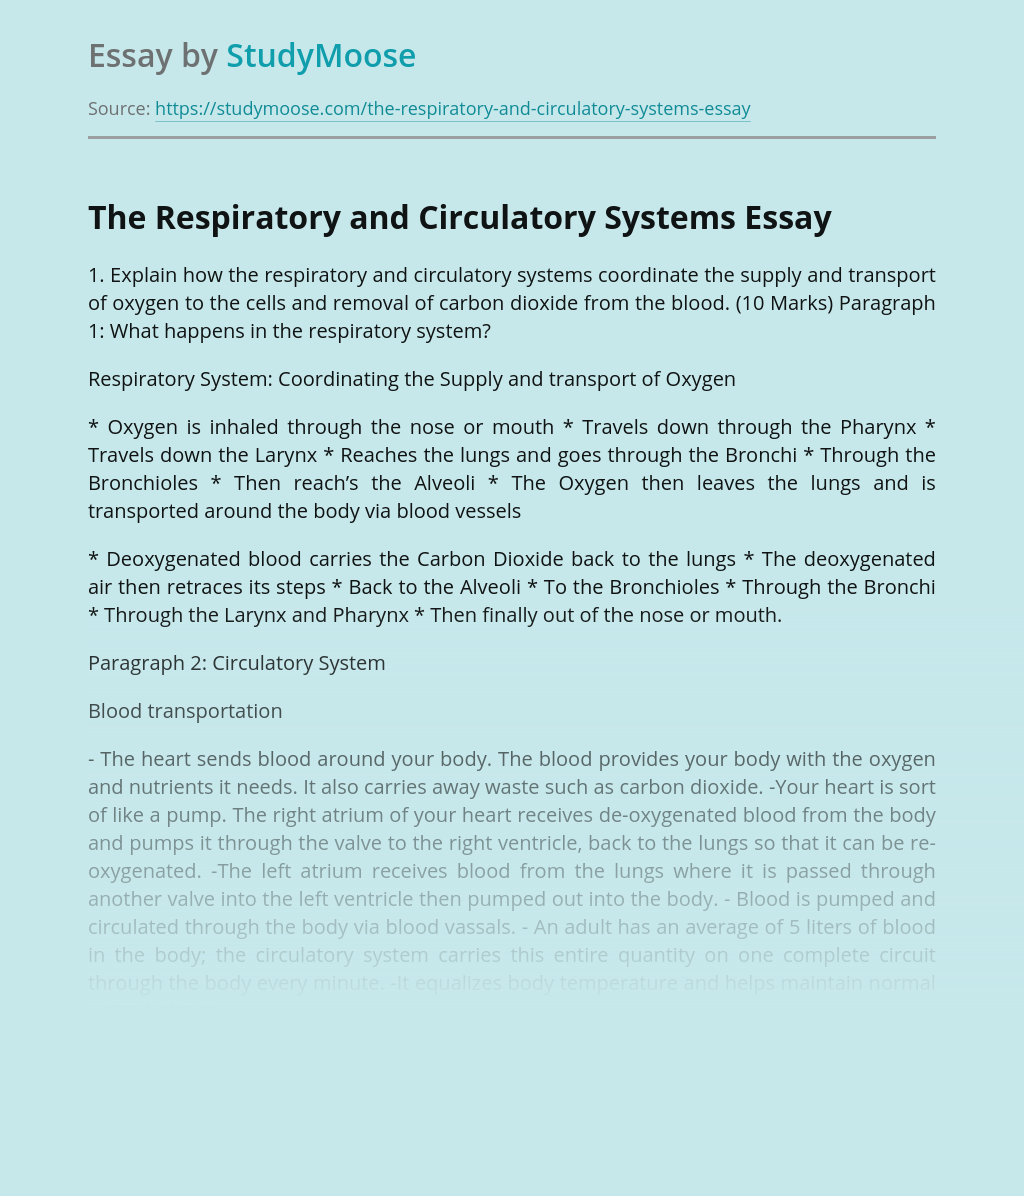 The Respiratory and Circulatory Systems